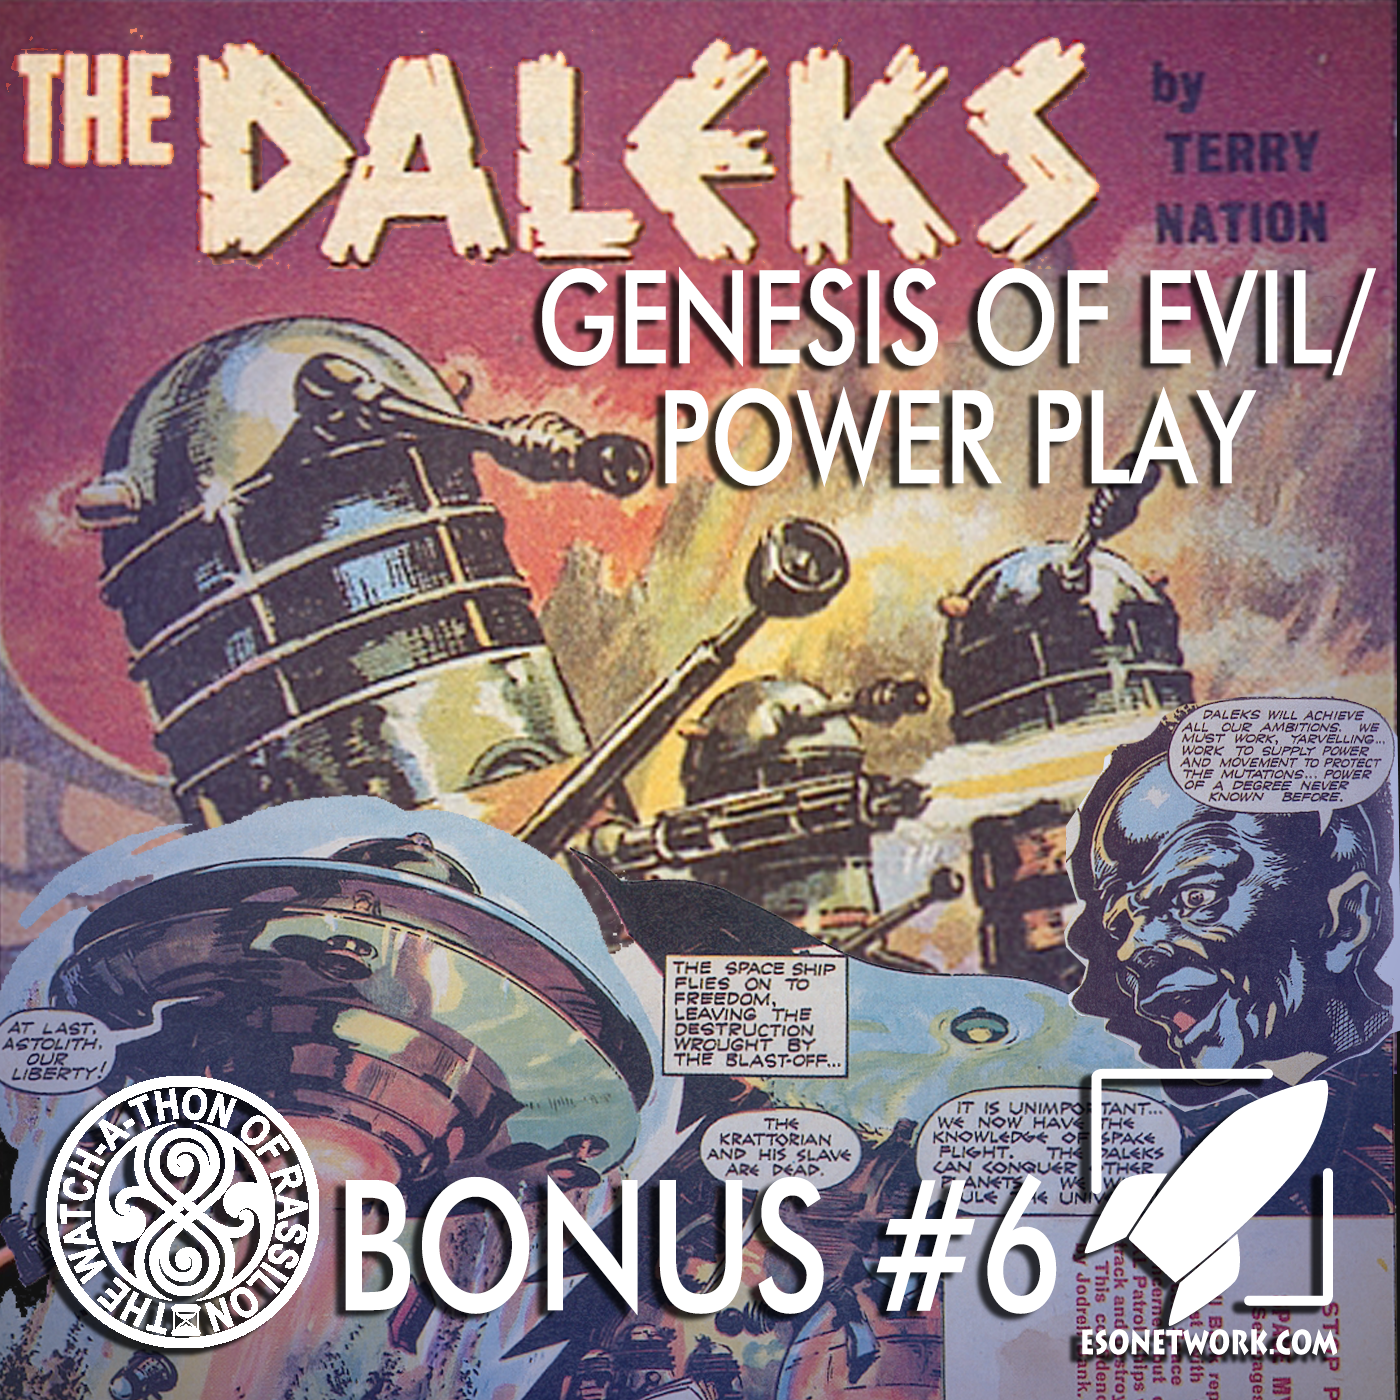 The Daleks Genesis of Evil